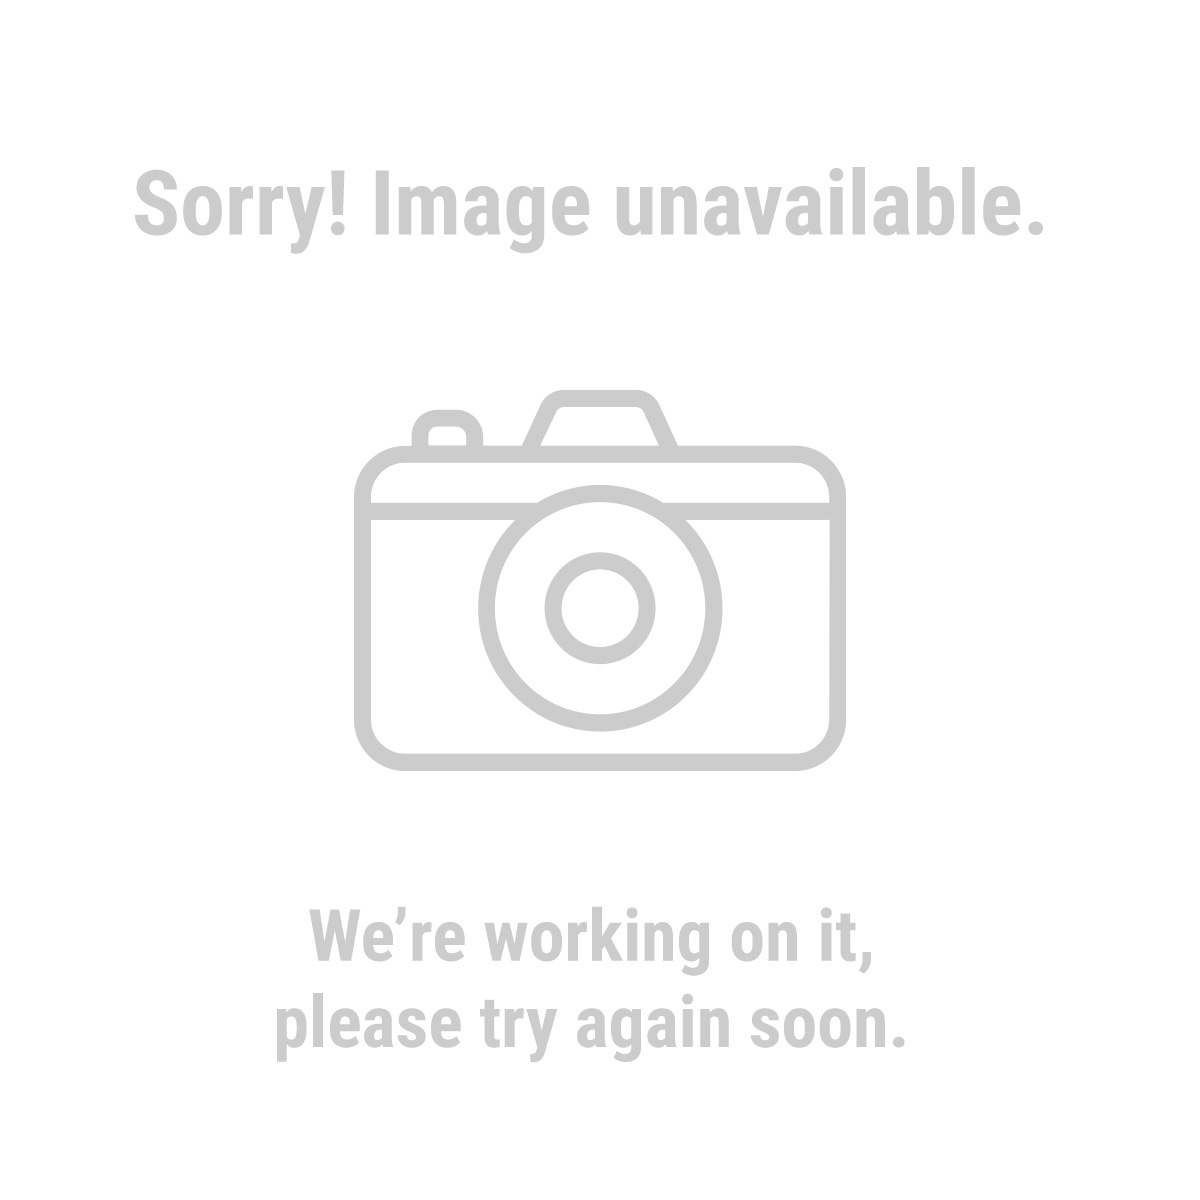 HFT 61994 25 ft. x 12 Gauge Triple Tap Extension Cord with Indicator Light